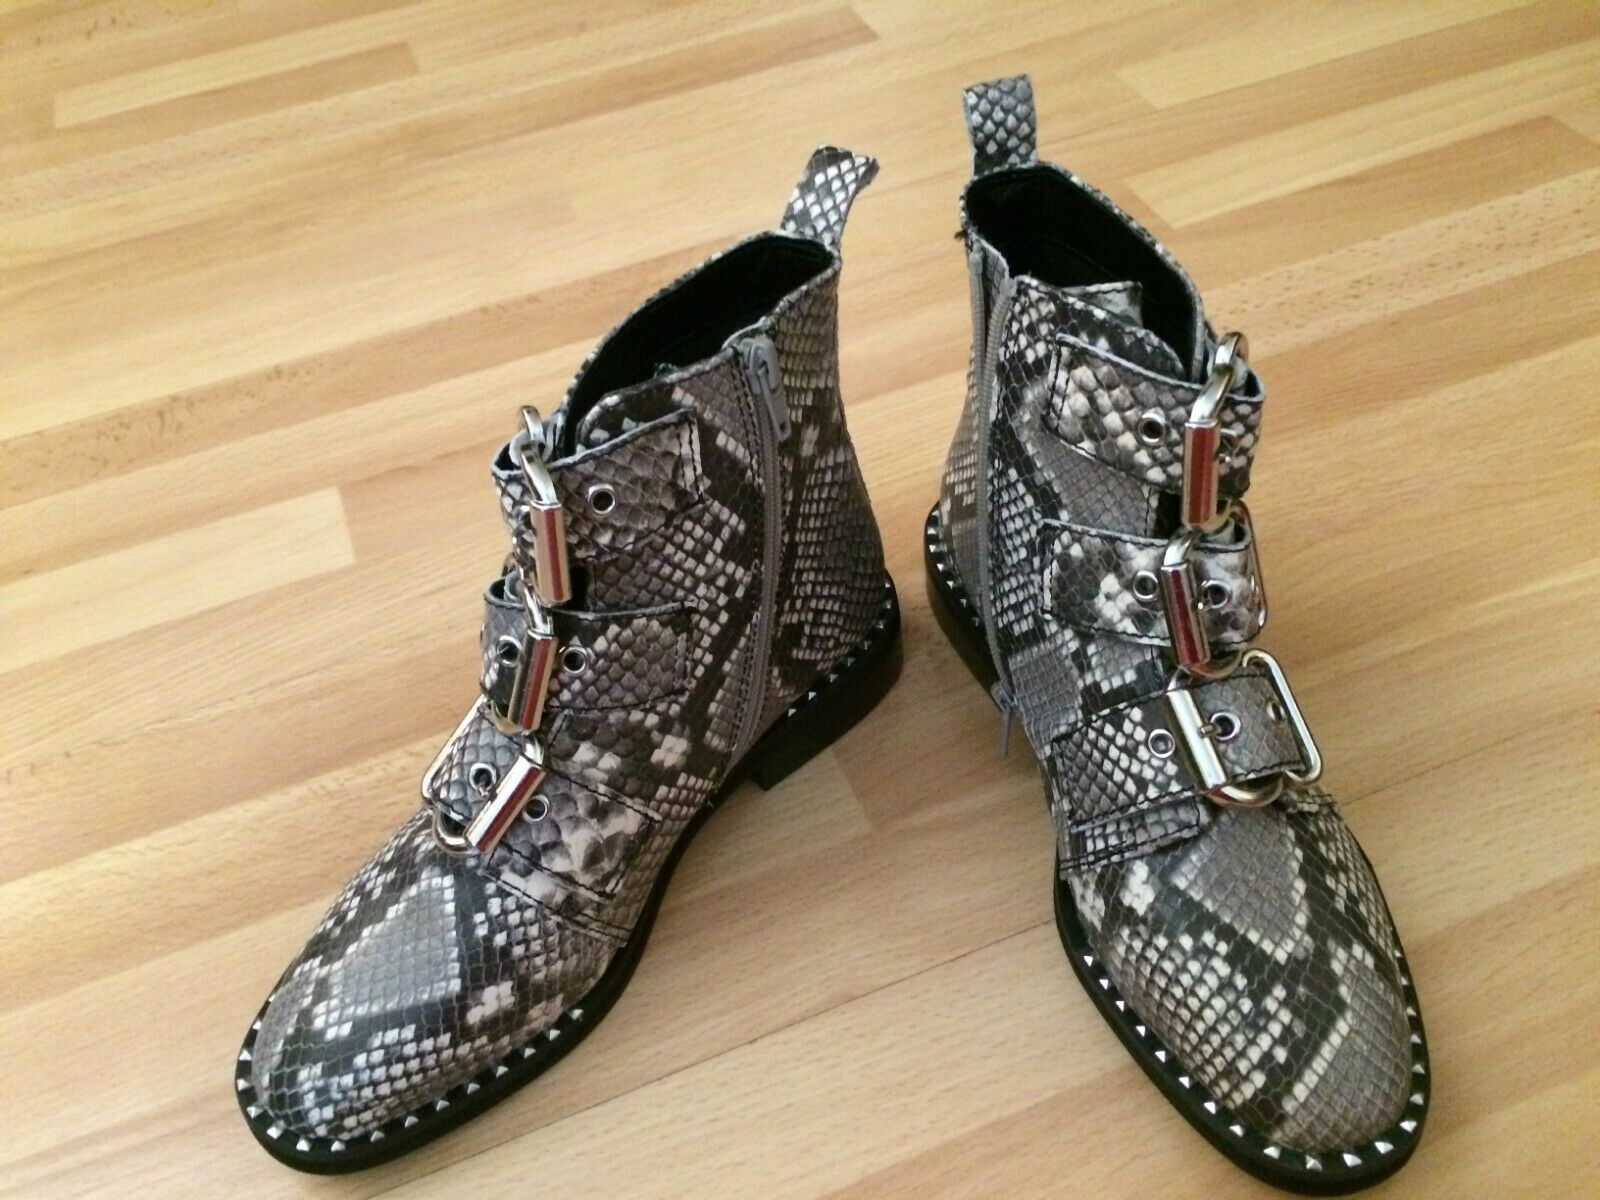 New Steve Madden Recharge Natural Snake Women's Bootie Size 7.5  Ship from CA